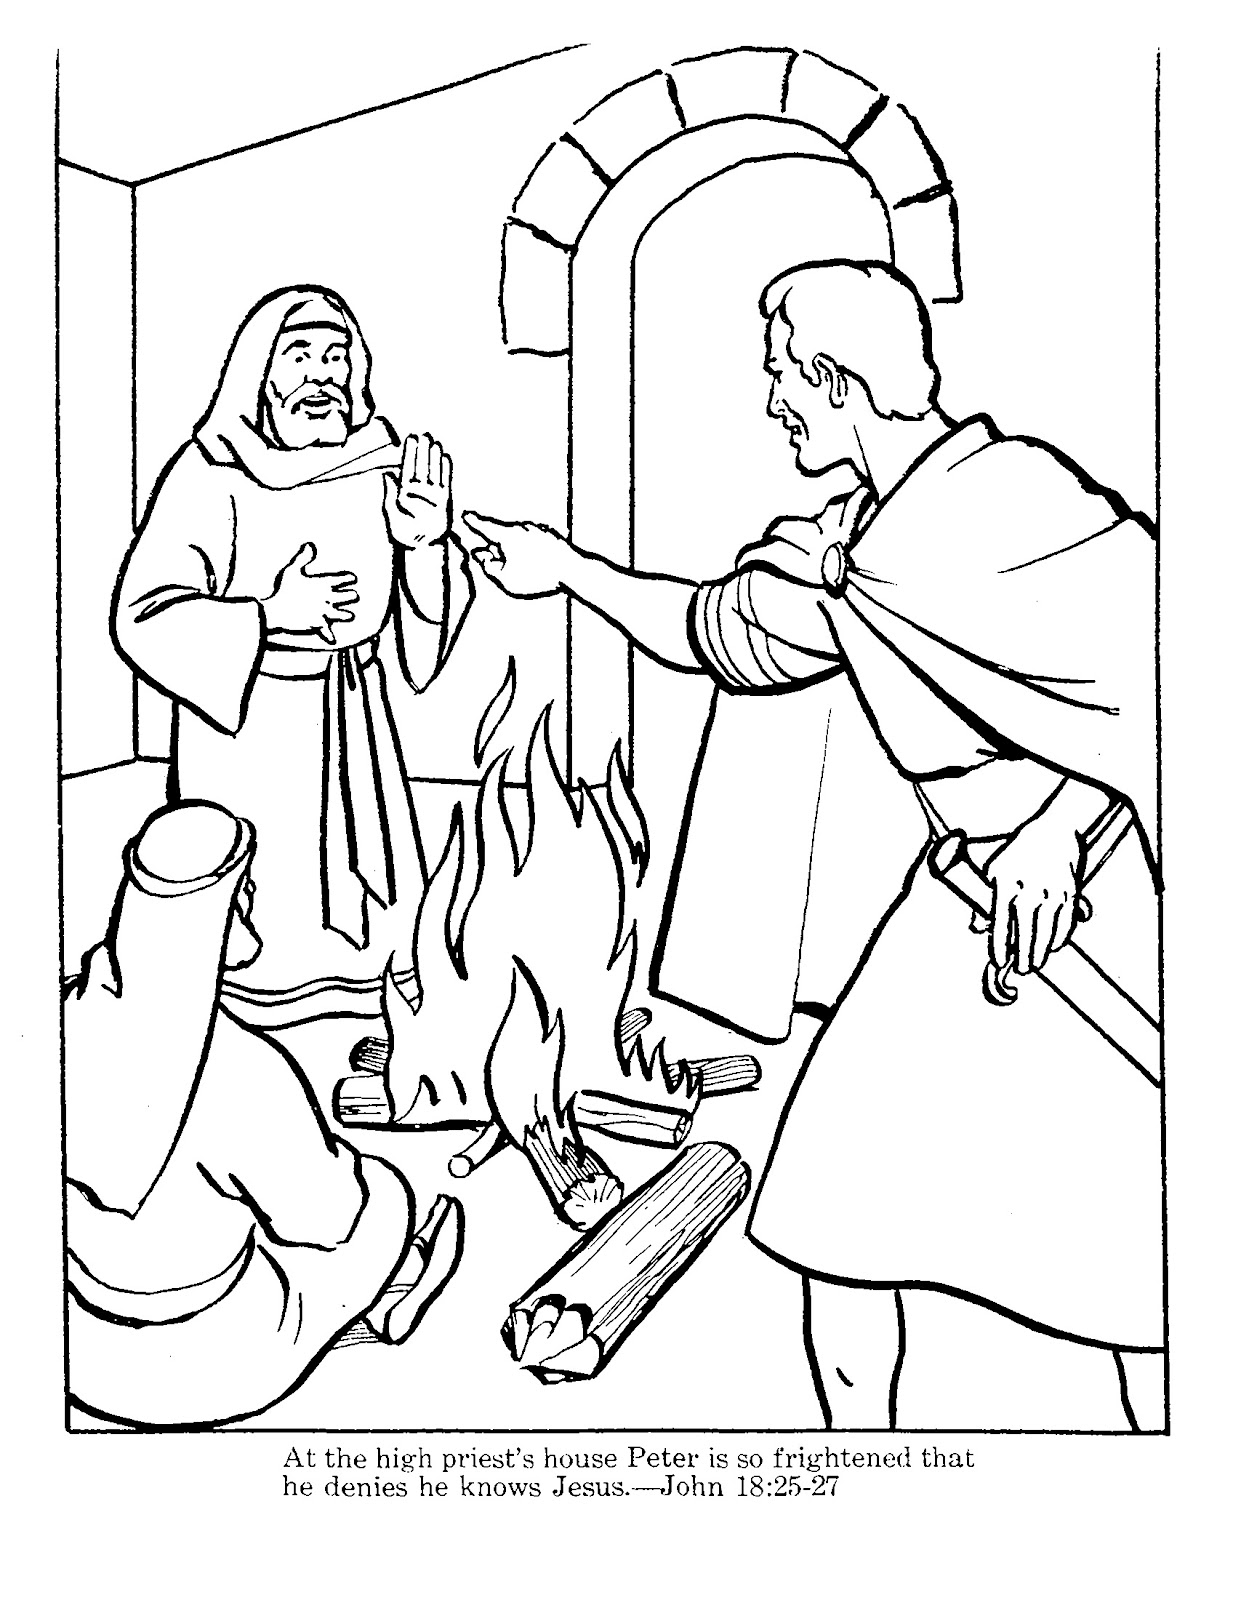 peter denies jesus coloring pages | The Wall: Peter